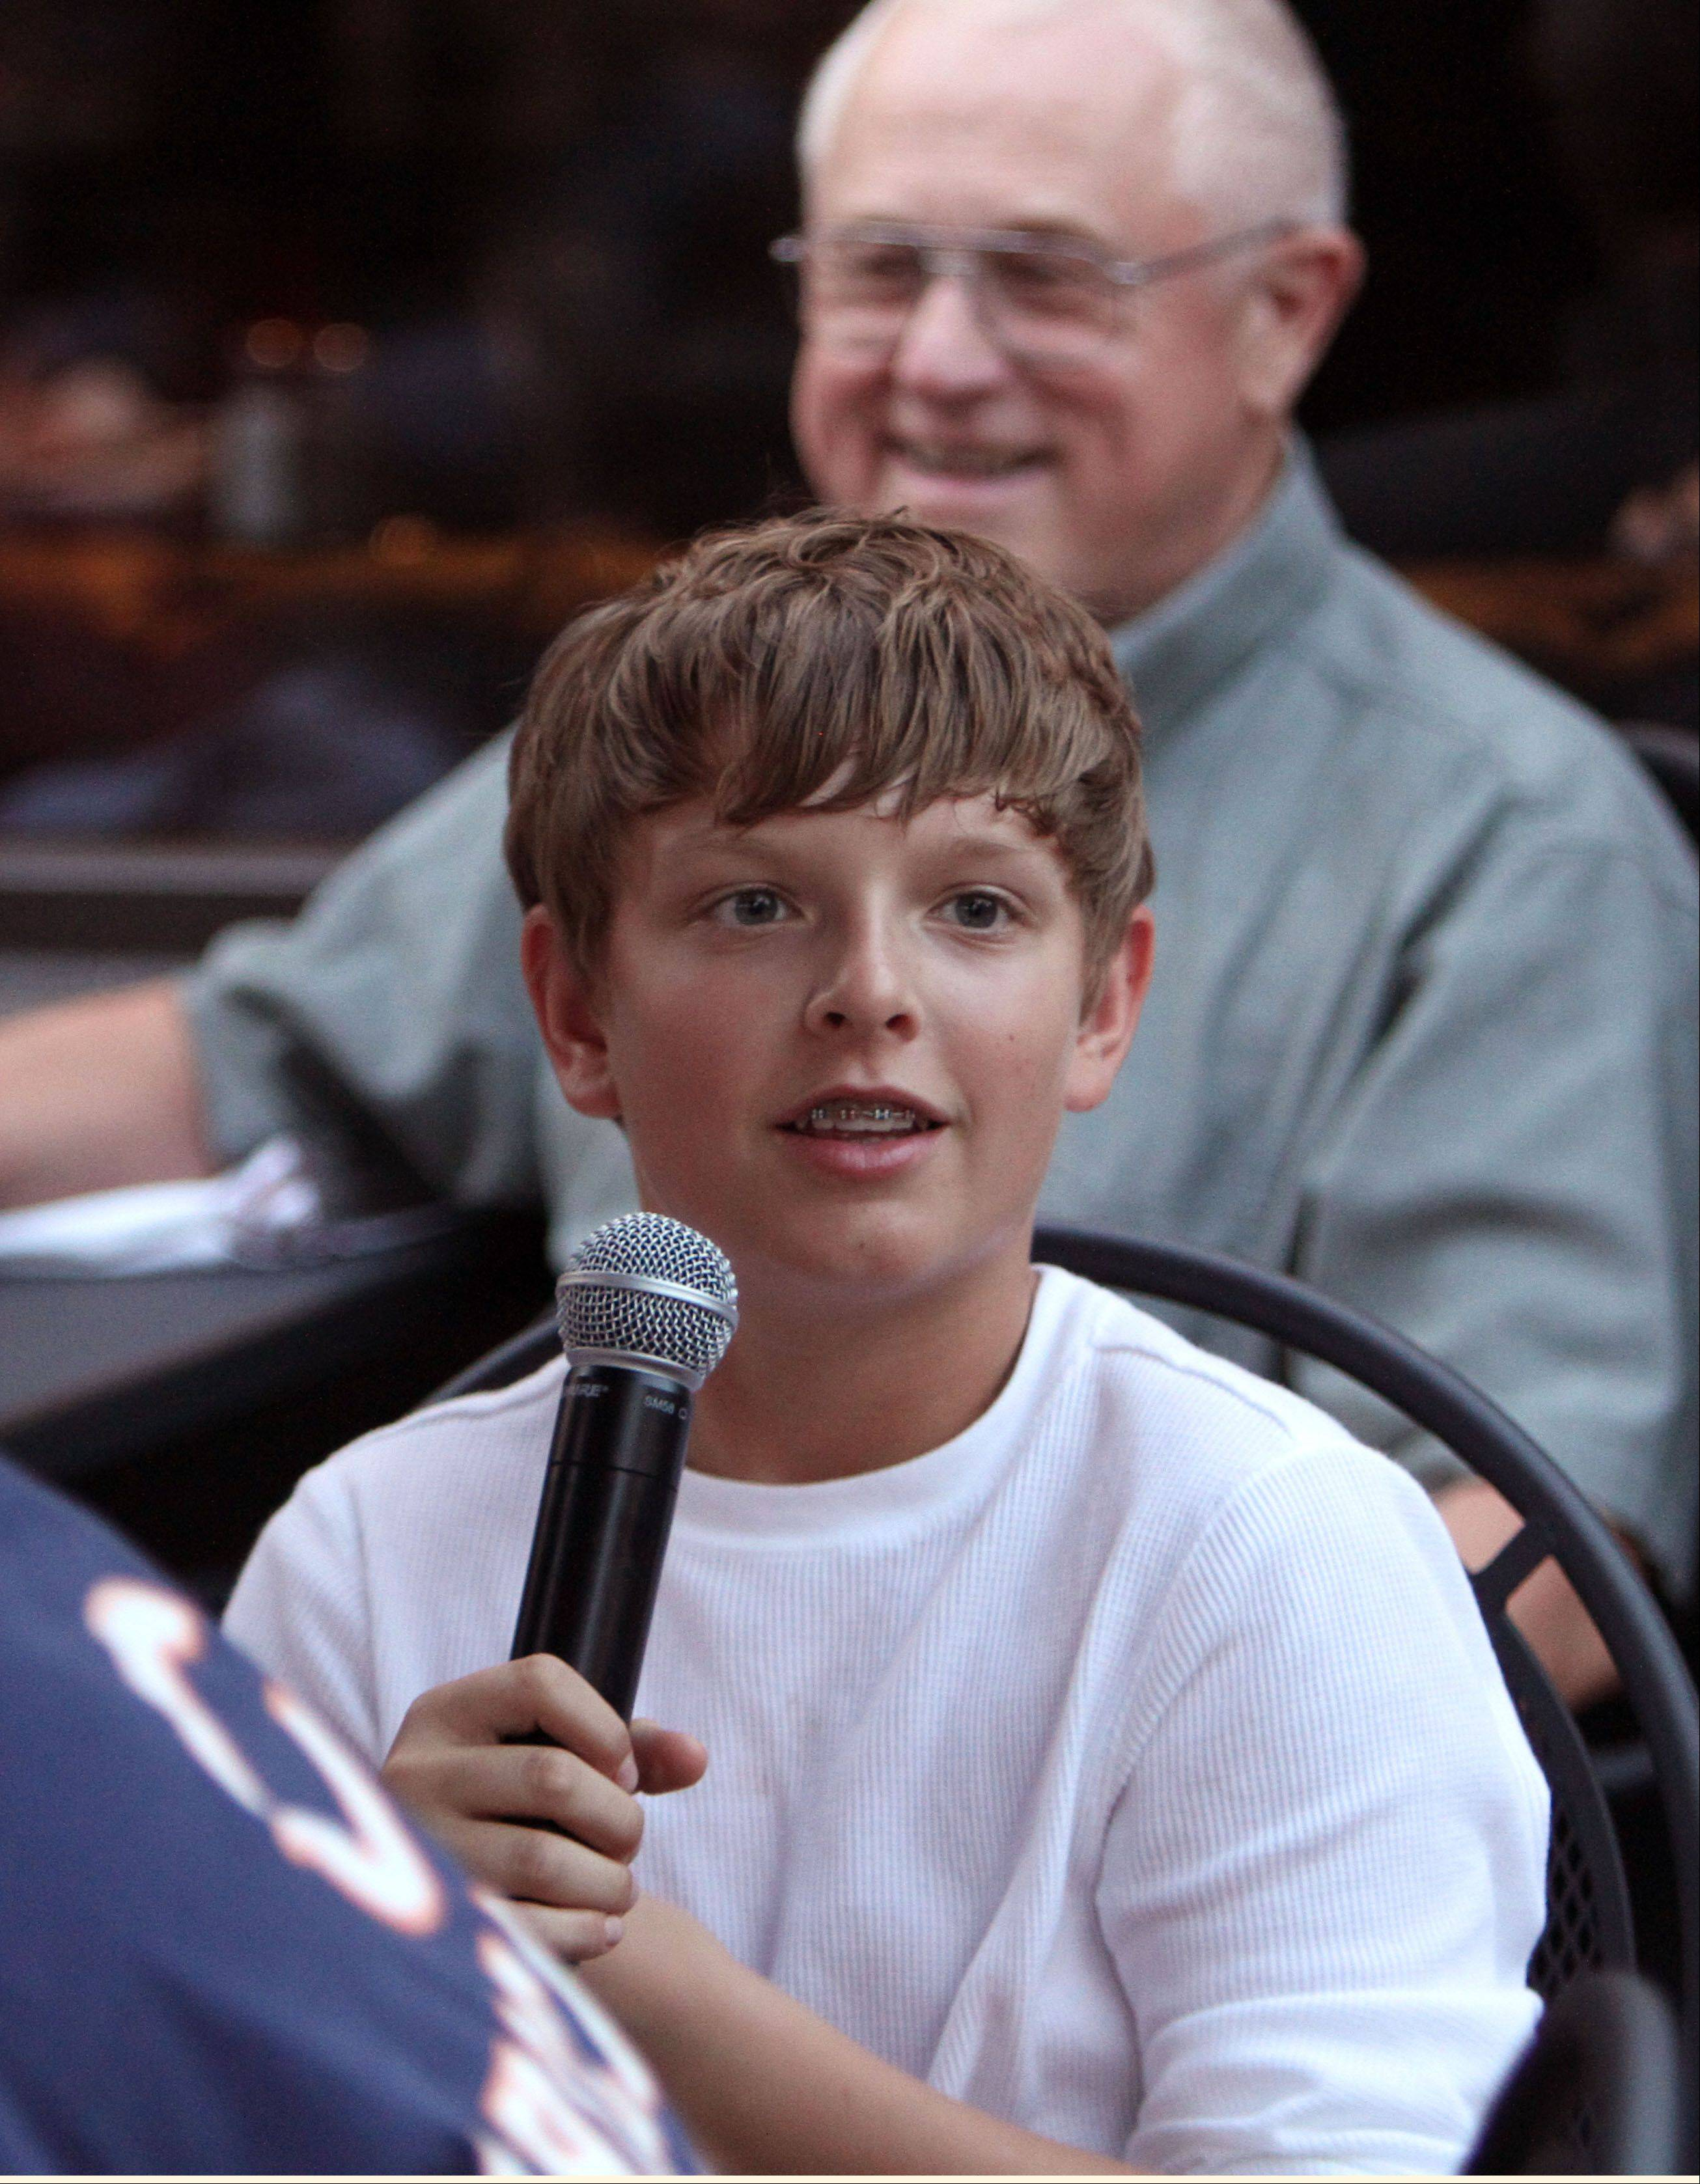 Thirteen-year-old Matt Grabianski of Palatine asks a question Monday during a Fantasy Football preview event hosted by Daily Herald columnist John Dietz, Bears beat writer Bob LeGere and sports writer Joe Aguilar at Rack House Kitchen and Tavern in Arlington Heights.